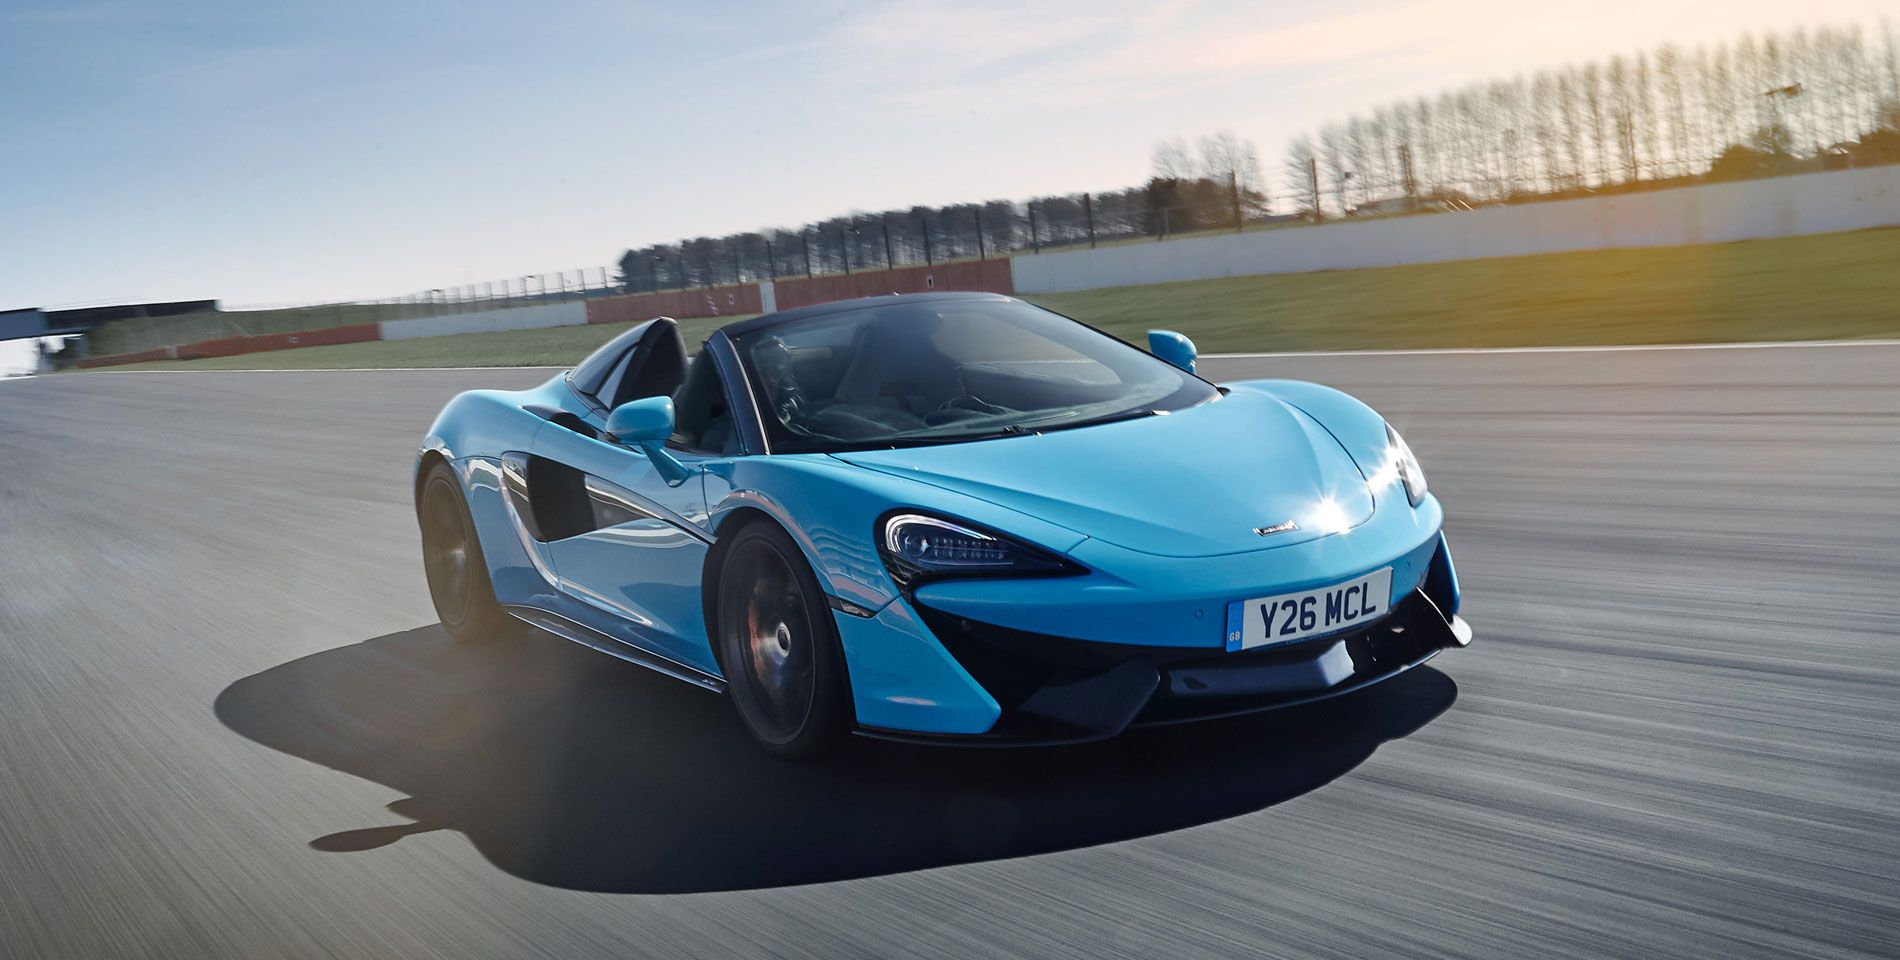 Mclaren 570s Configurator in 2020 Cars for sale, New